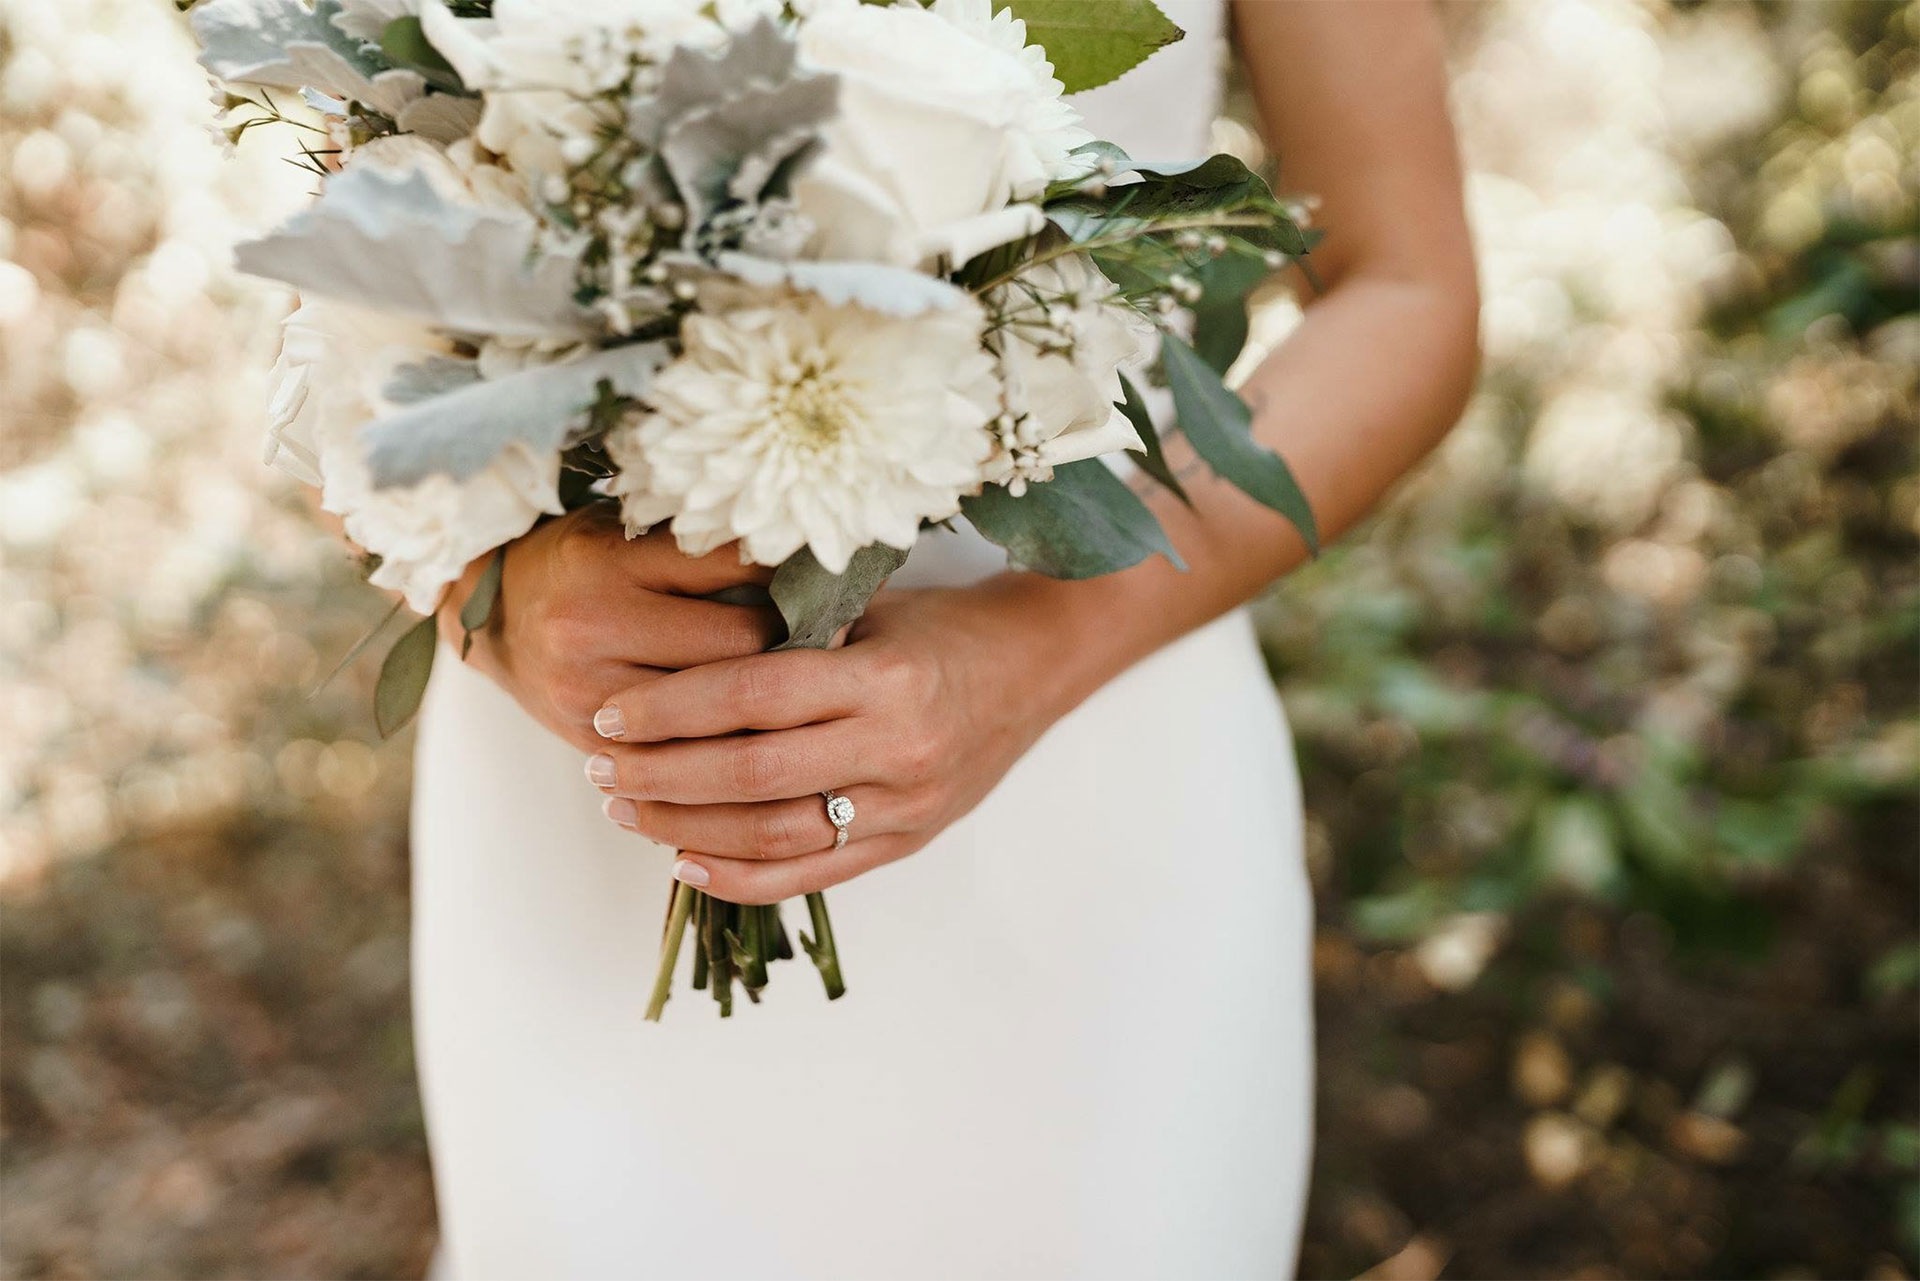 Beautiful Floral Arrangement for Wedding with White Dress